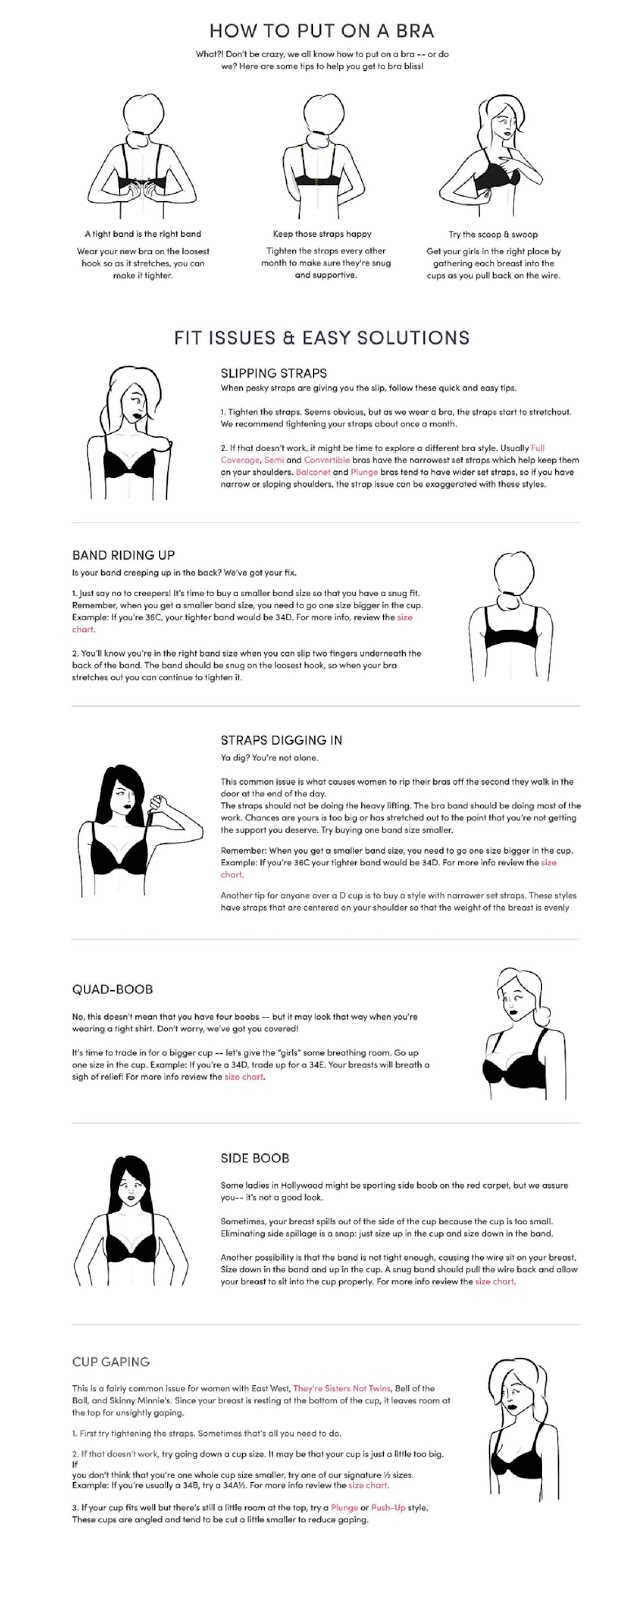 Thirdlove: bra-blems and fixes